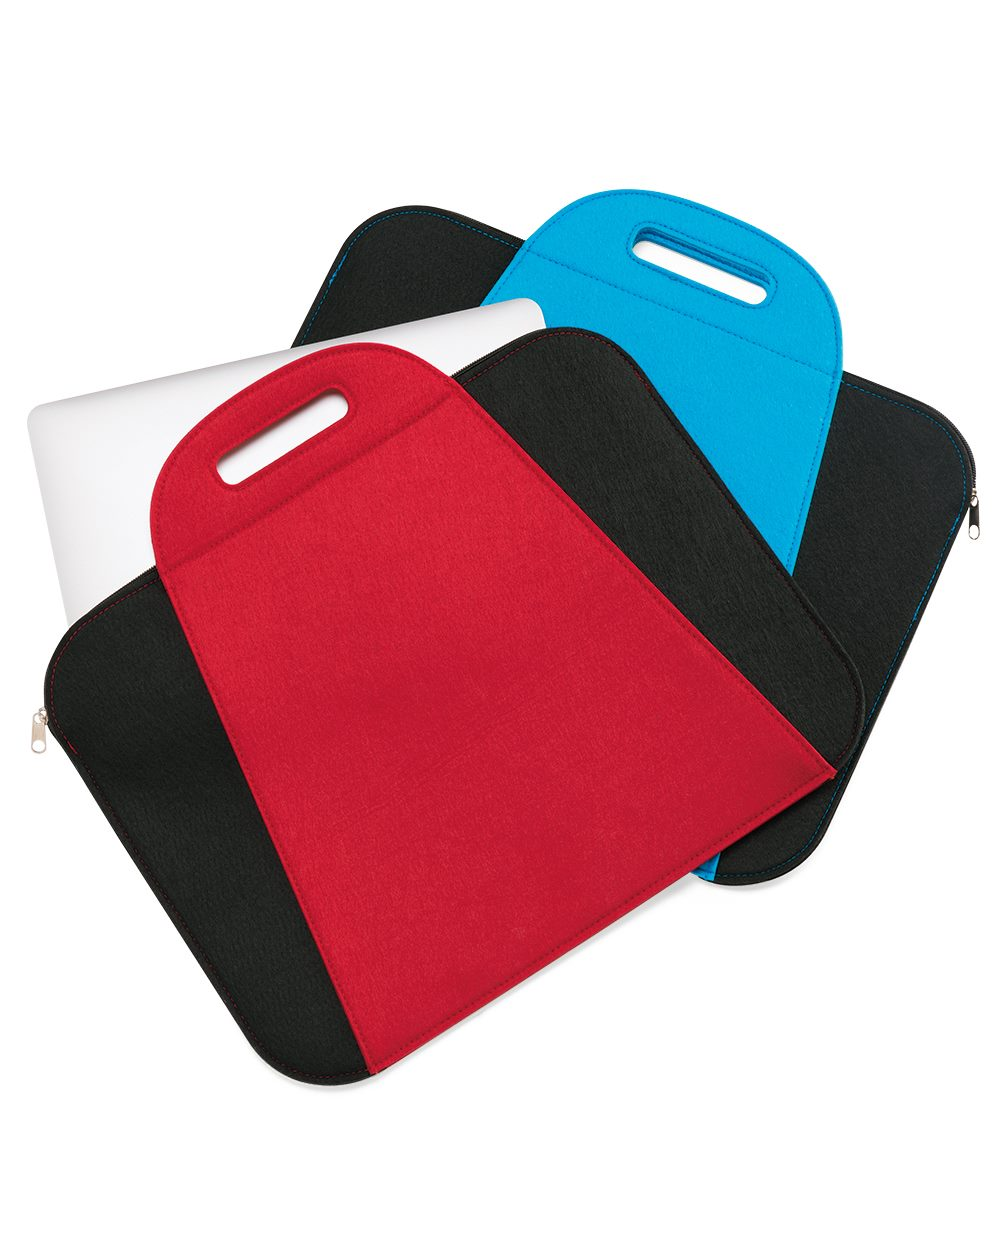 Valubag VB4103 - Felt Laptop Sleeve